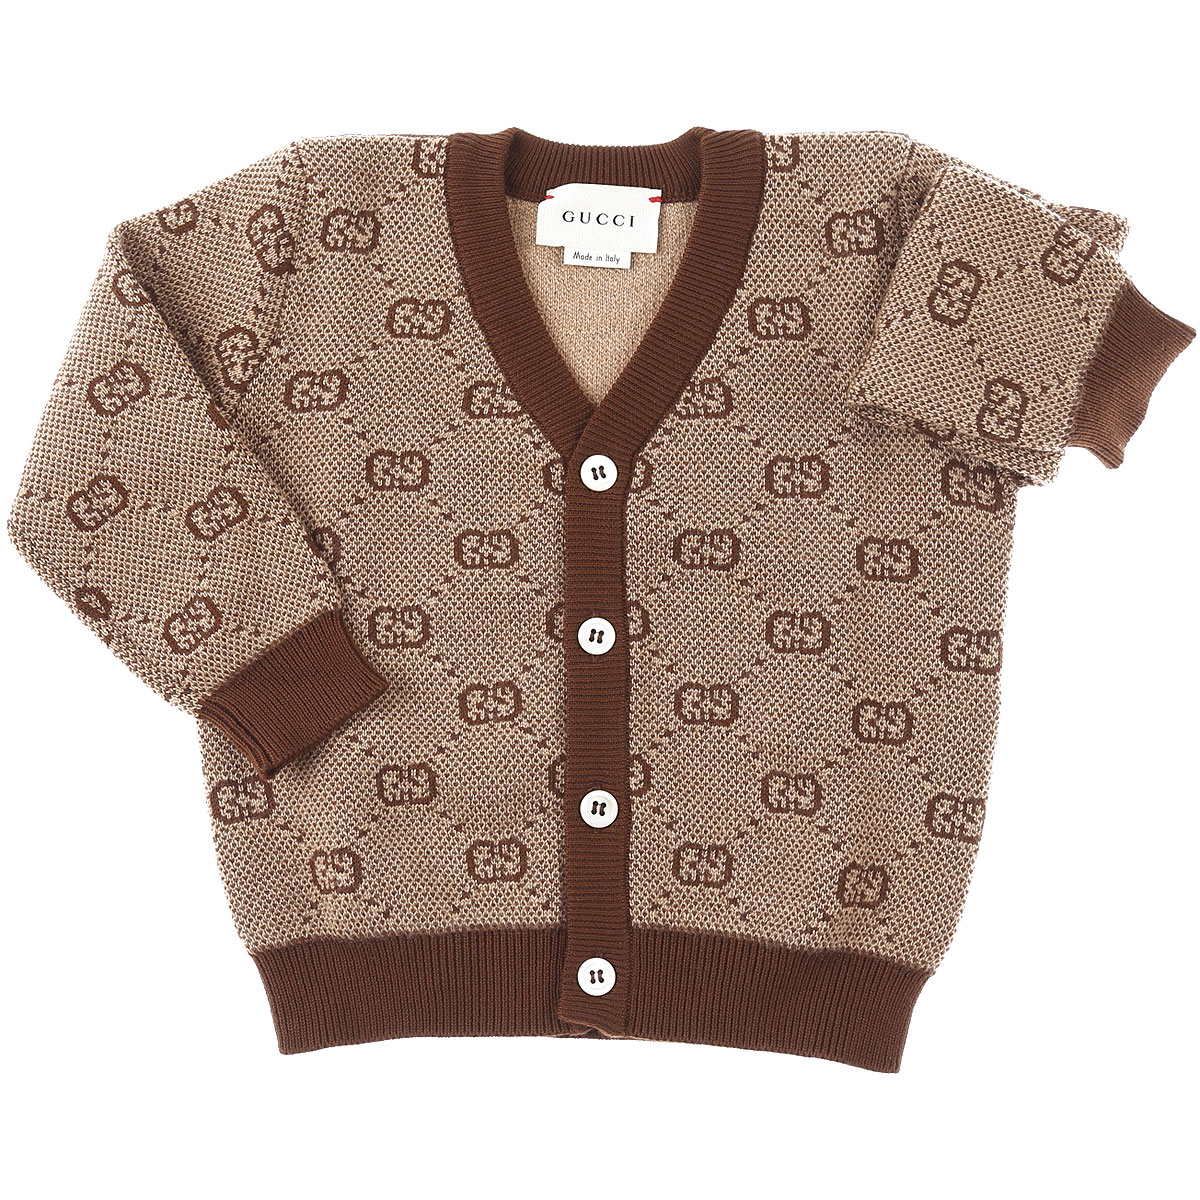 Gucci Baby Sweaters for Boys On Sale, Camel, Wool, 2019, 6M 9M